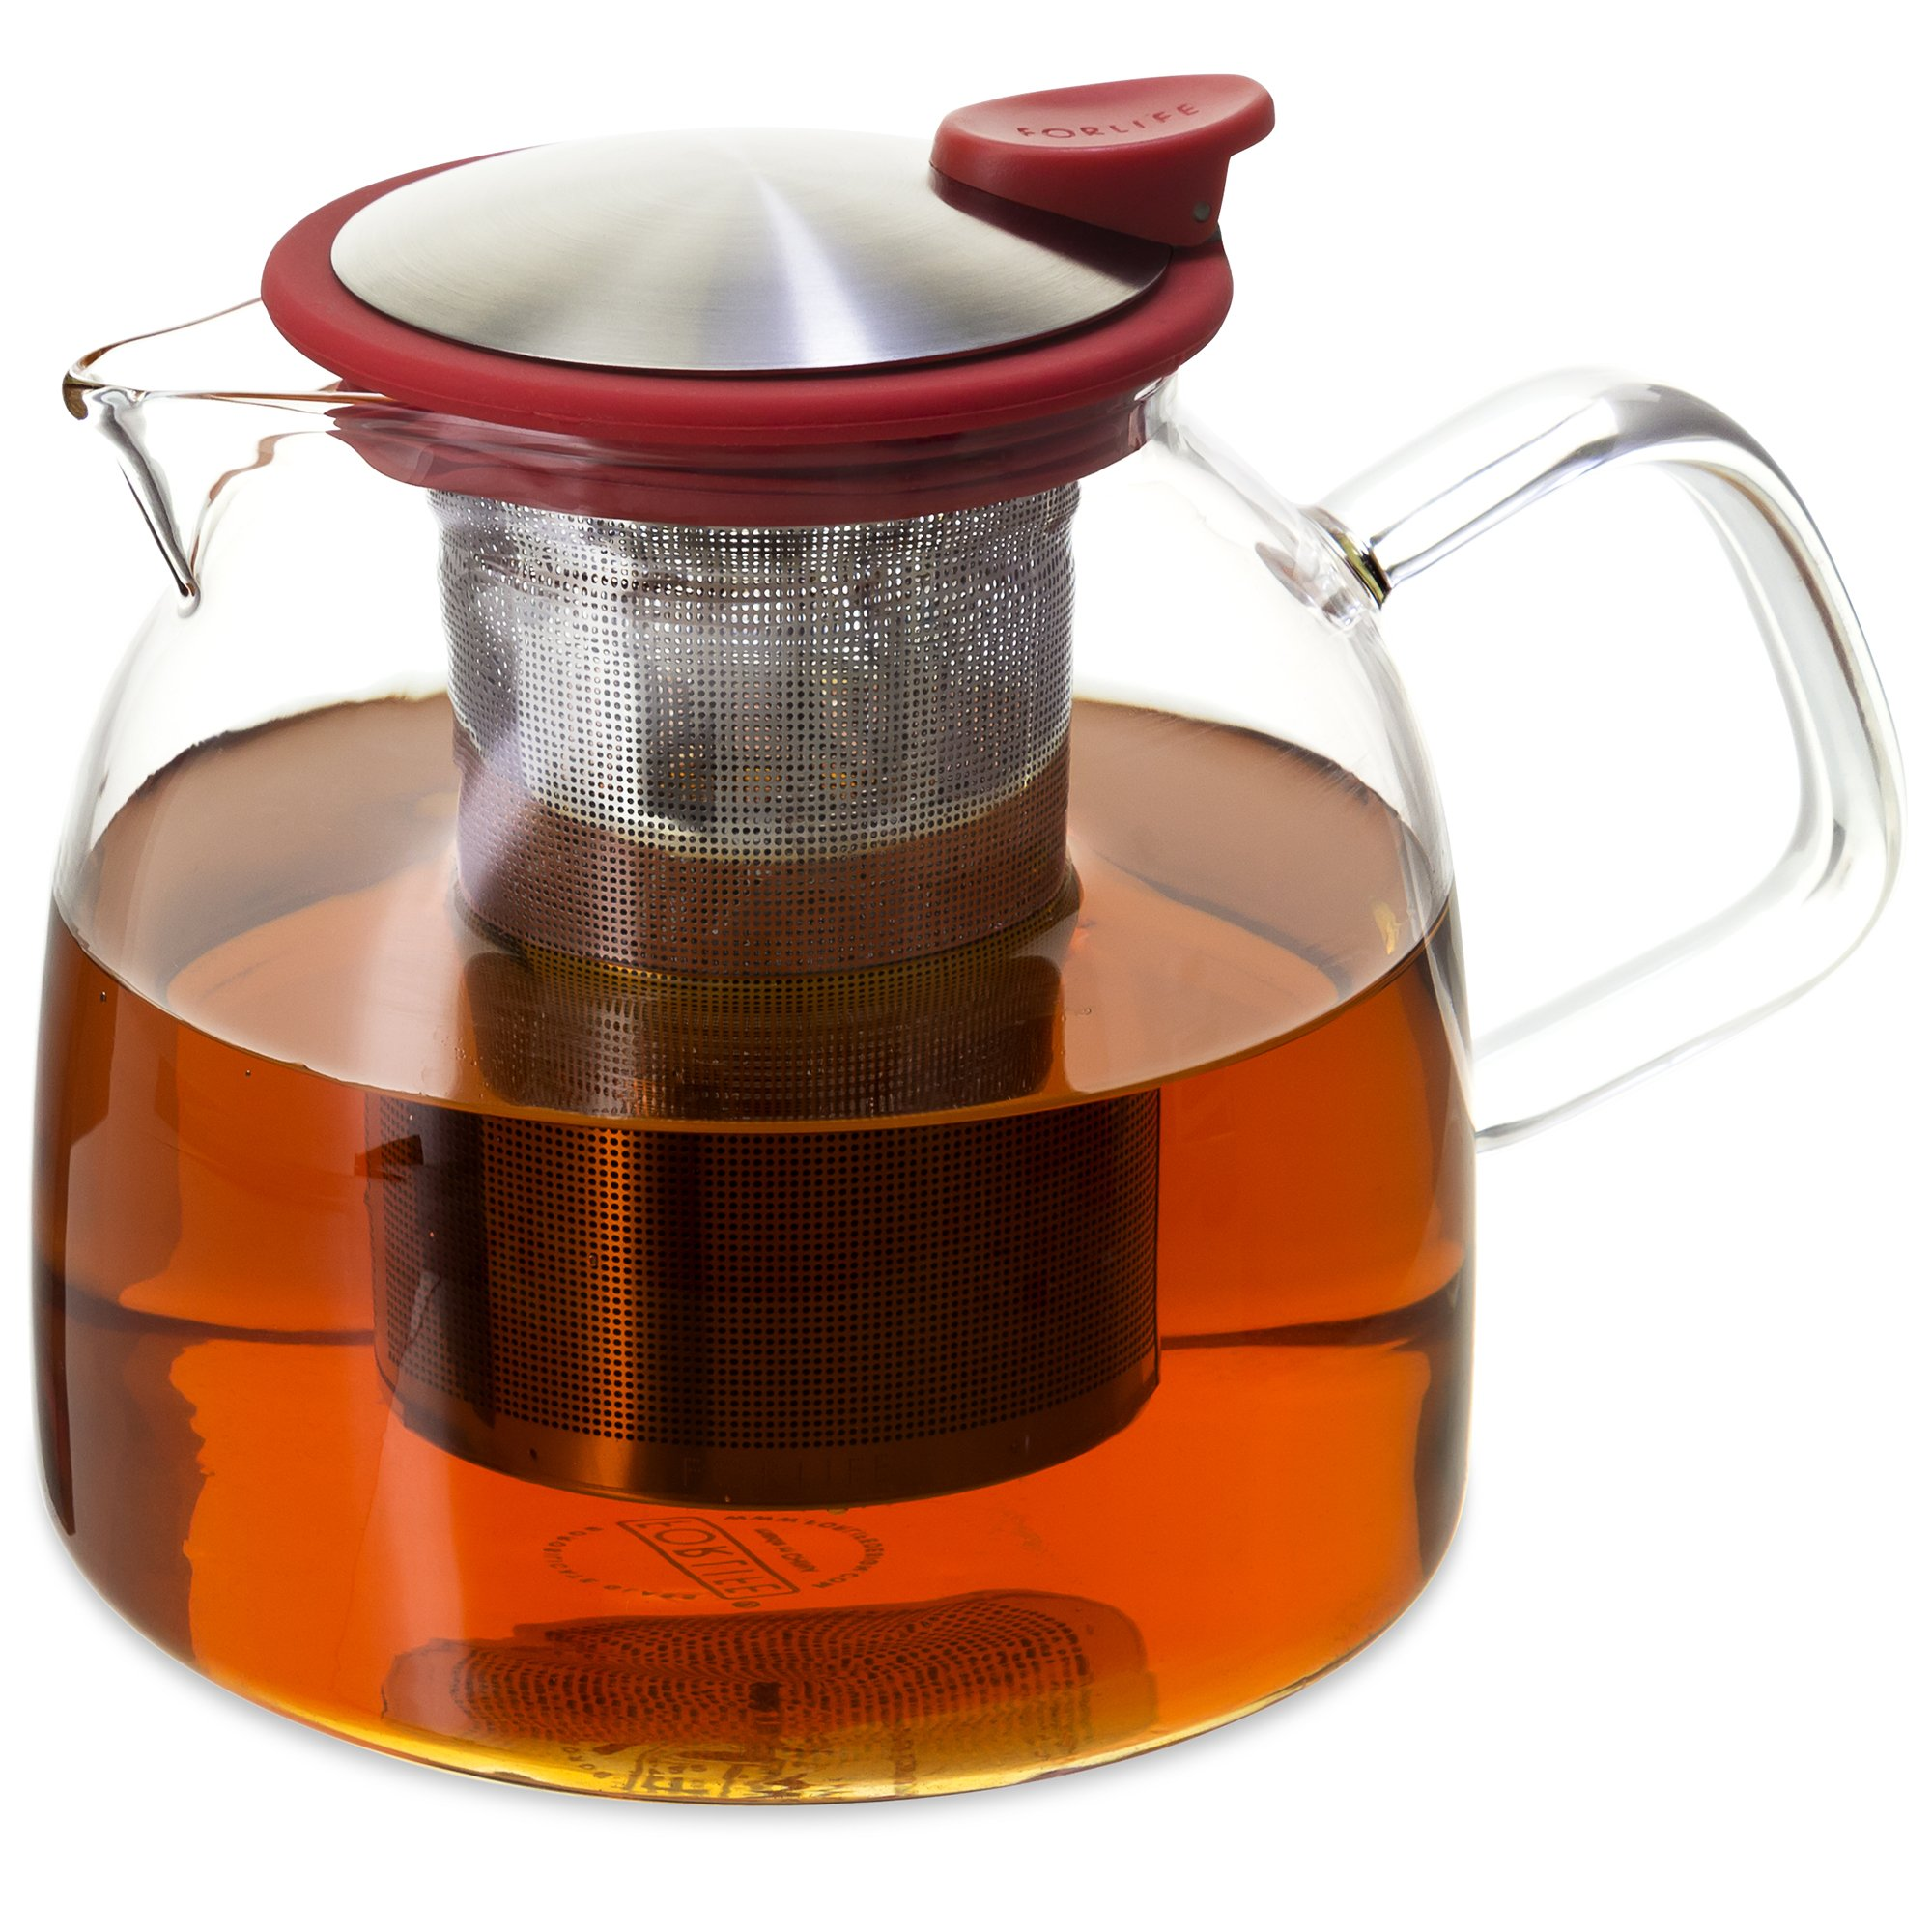 Forlife Bell Glass Teapot with Basket Infuser, 43-Ounce/1280ml, Red by FORLIFE